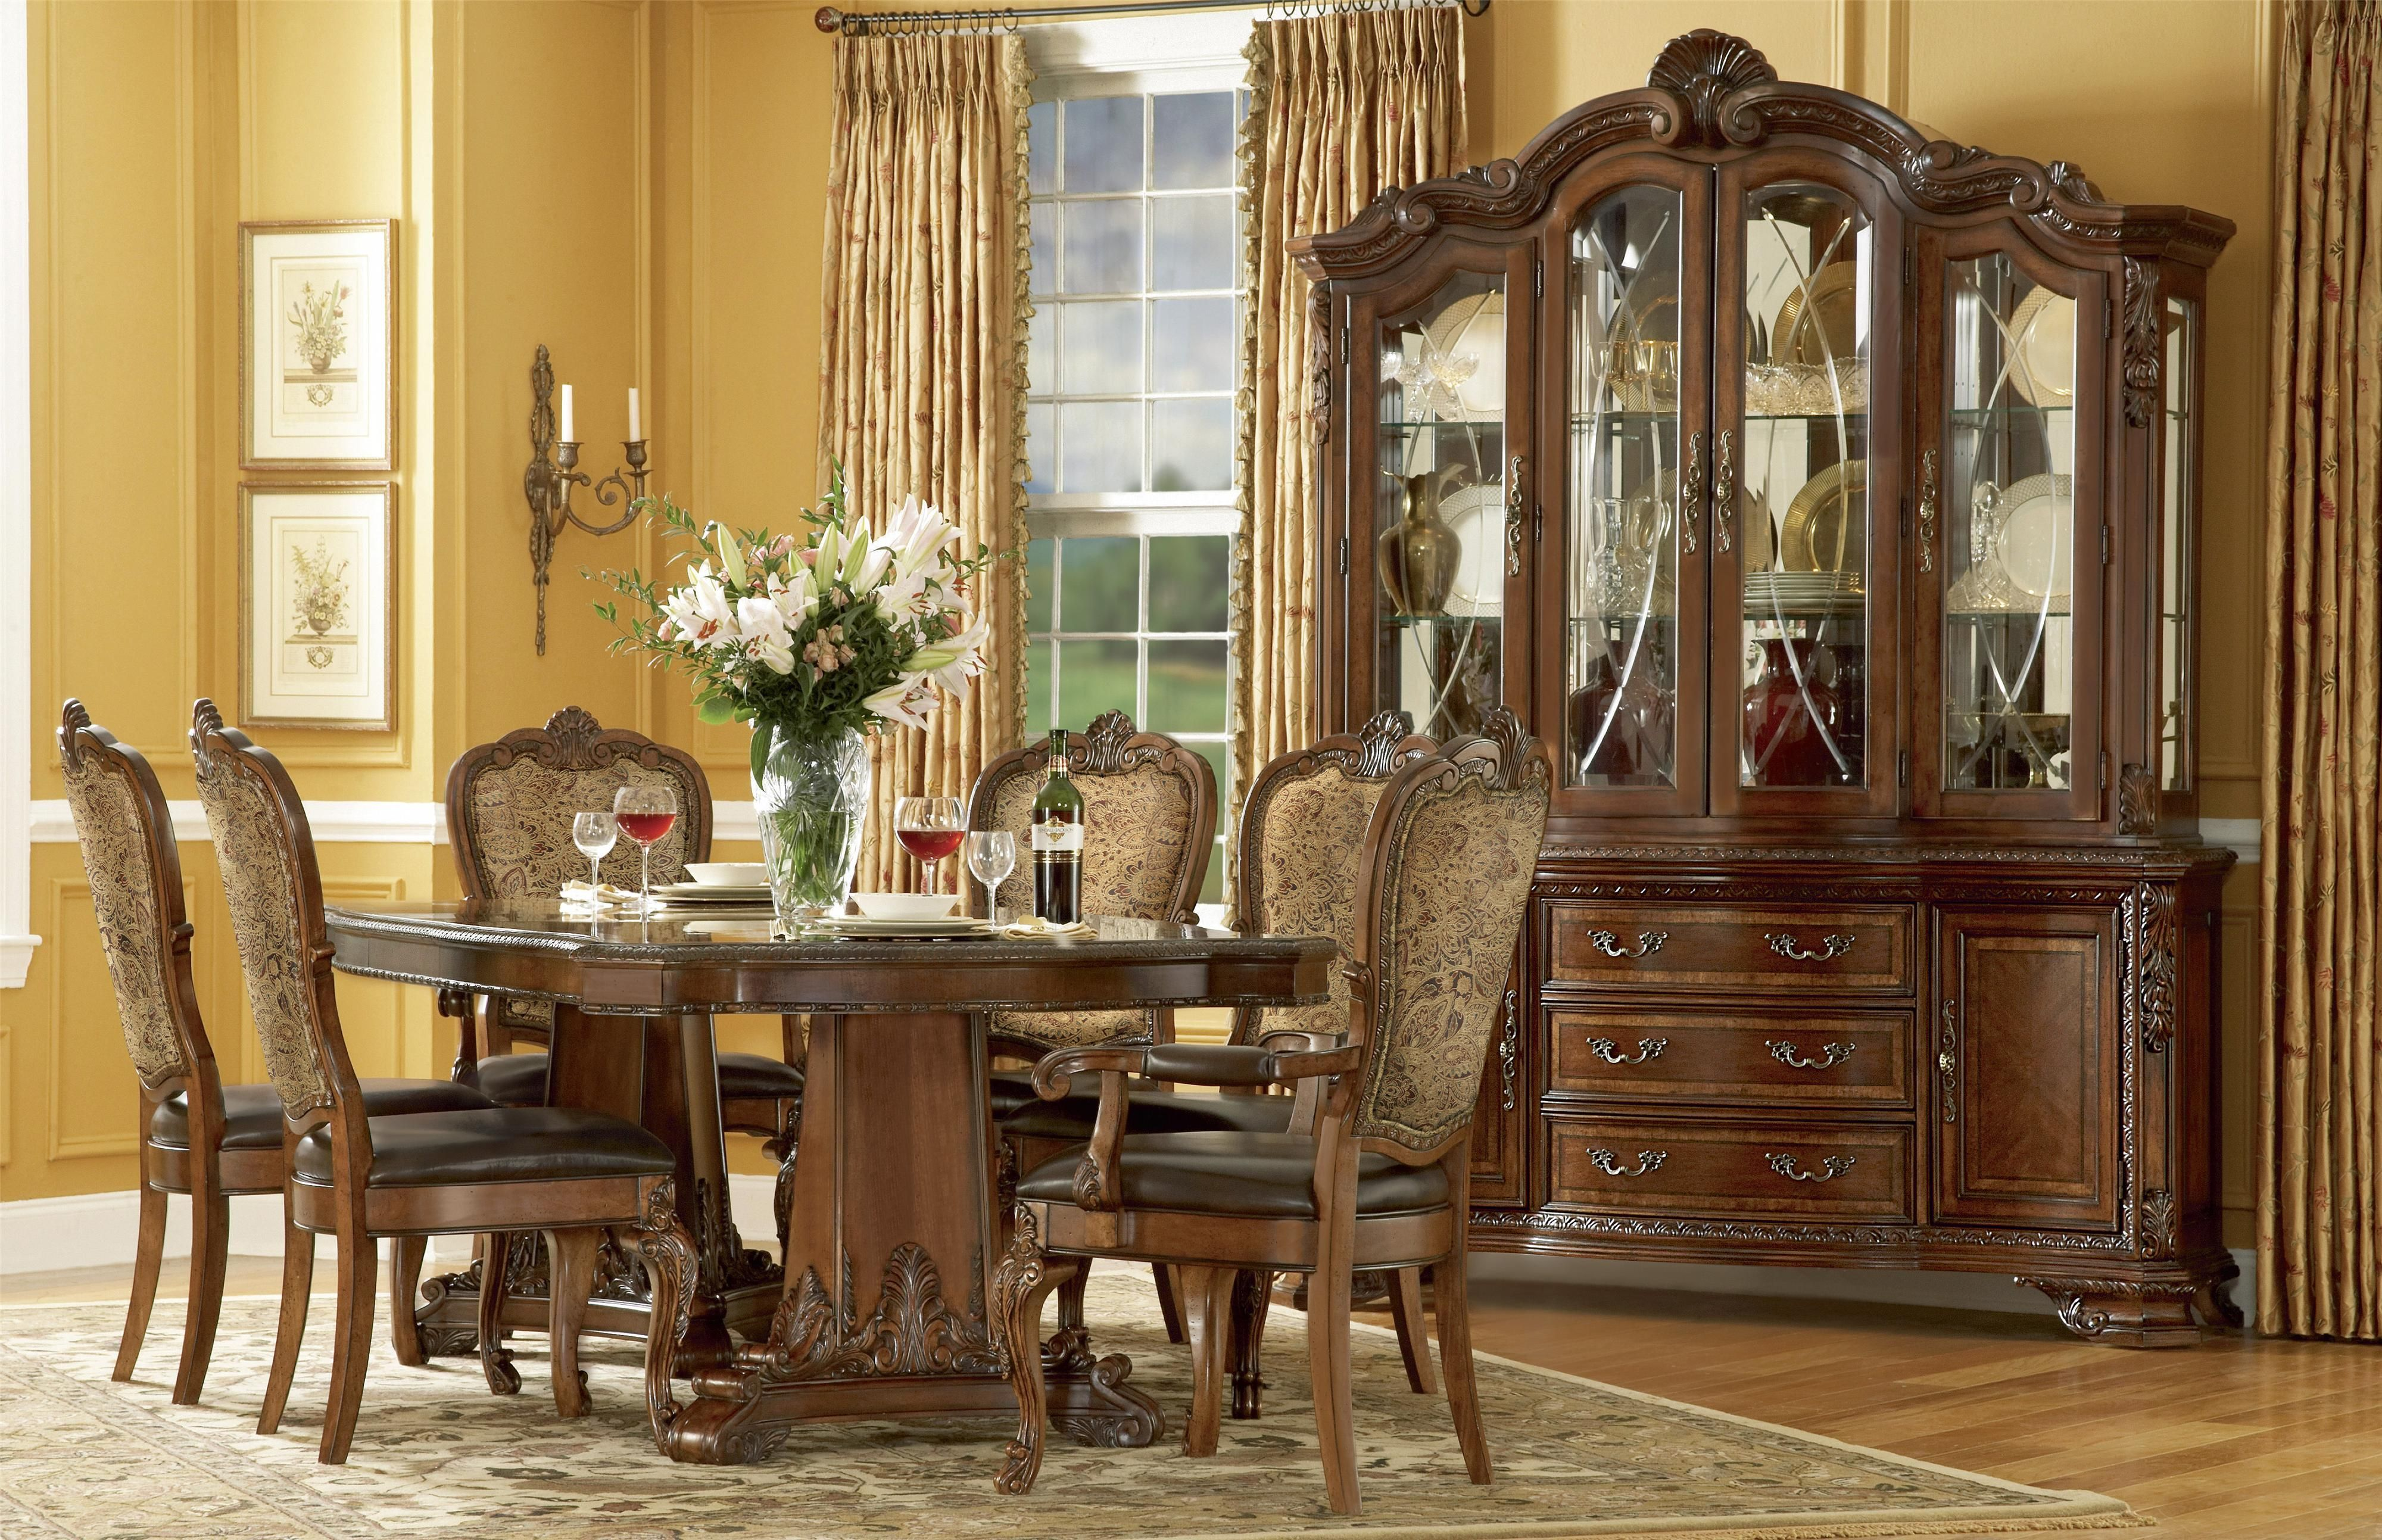 Old World Formal Dining Room Group By A.R.T. Furniture Inc At Powell Furniture  Store In Fredericksburg, VA